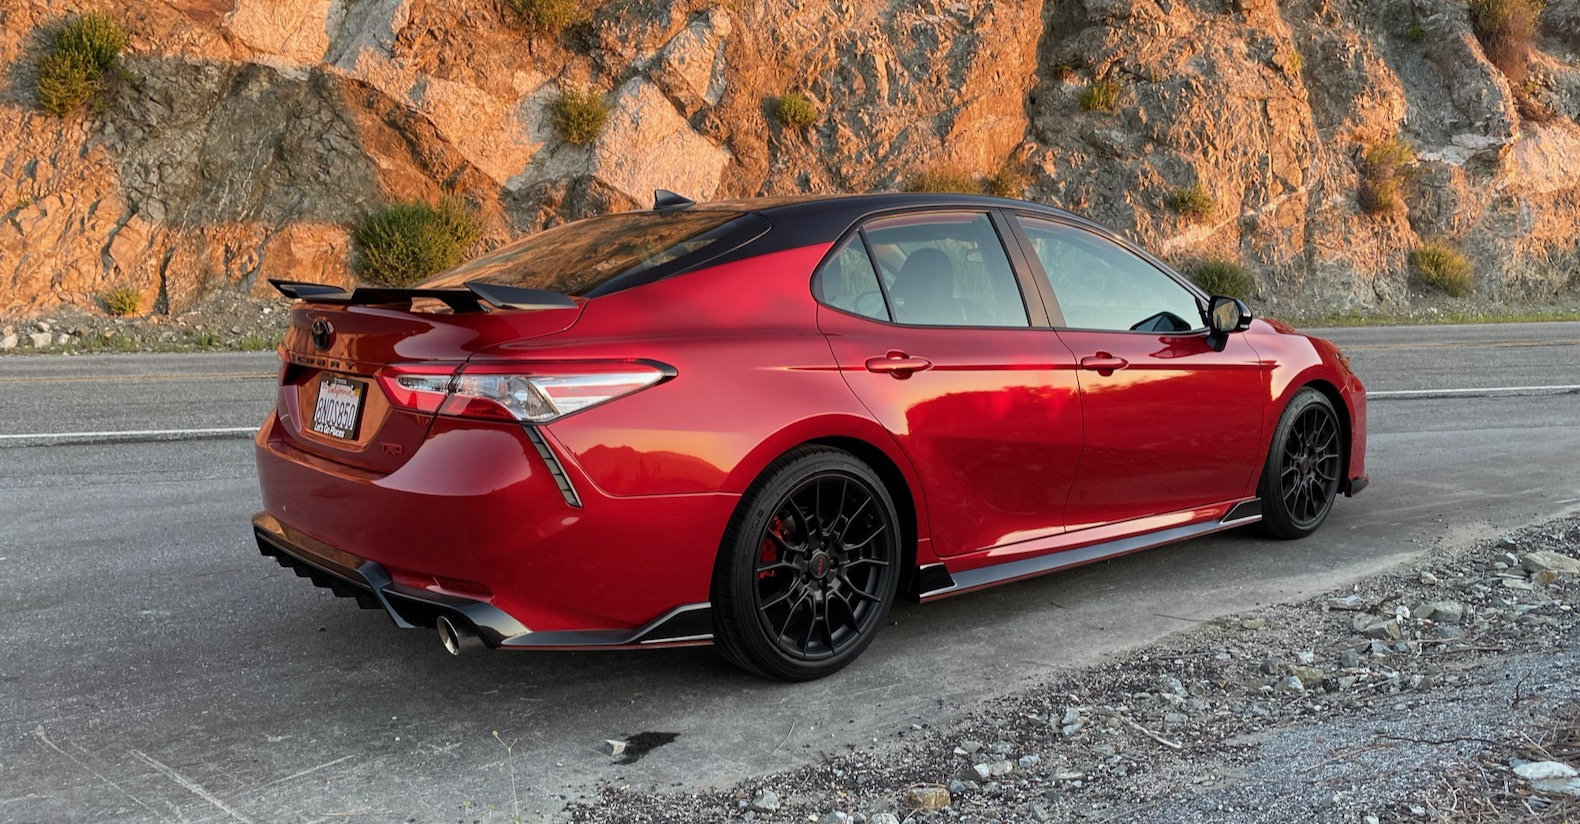 2020 Toyota Camry TRD Review: Surprisingly Sporty | The ...